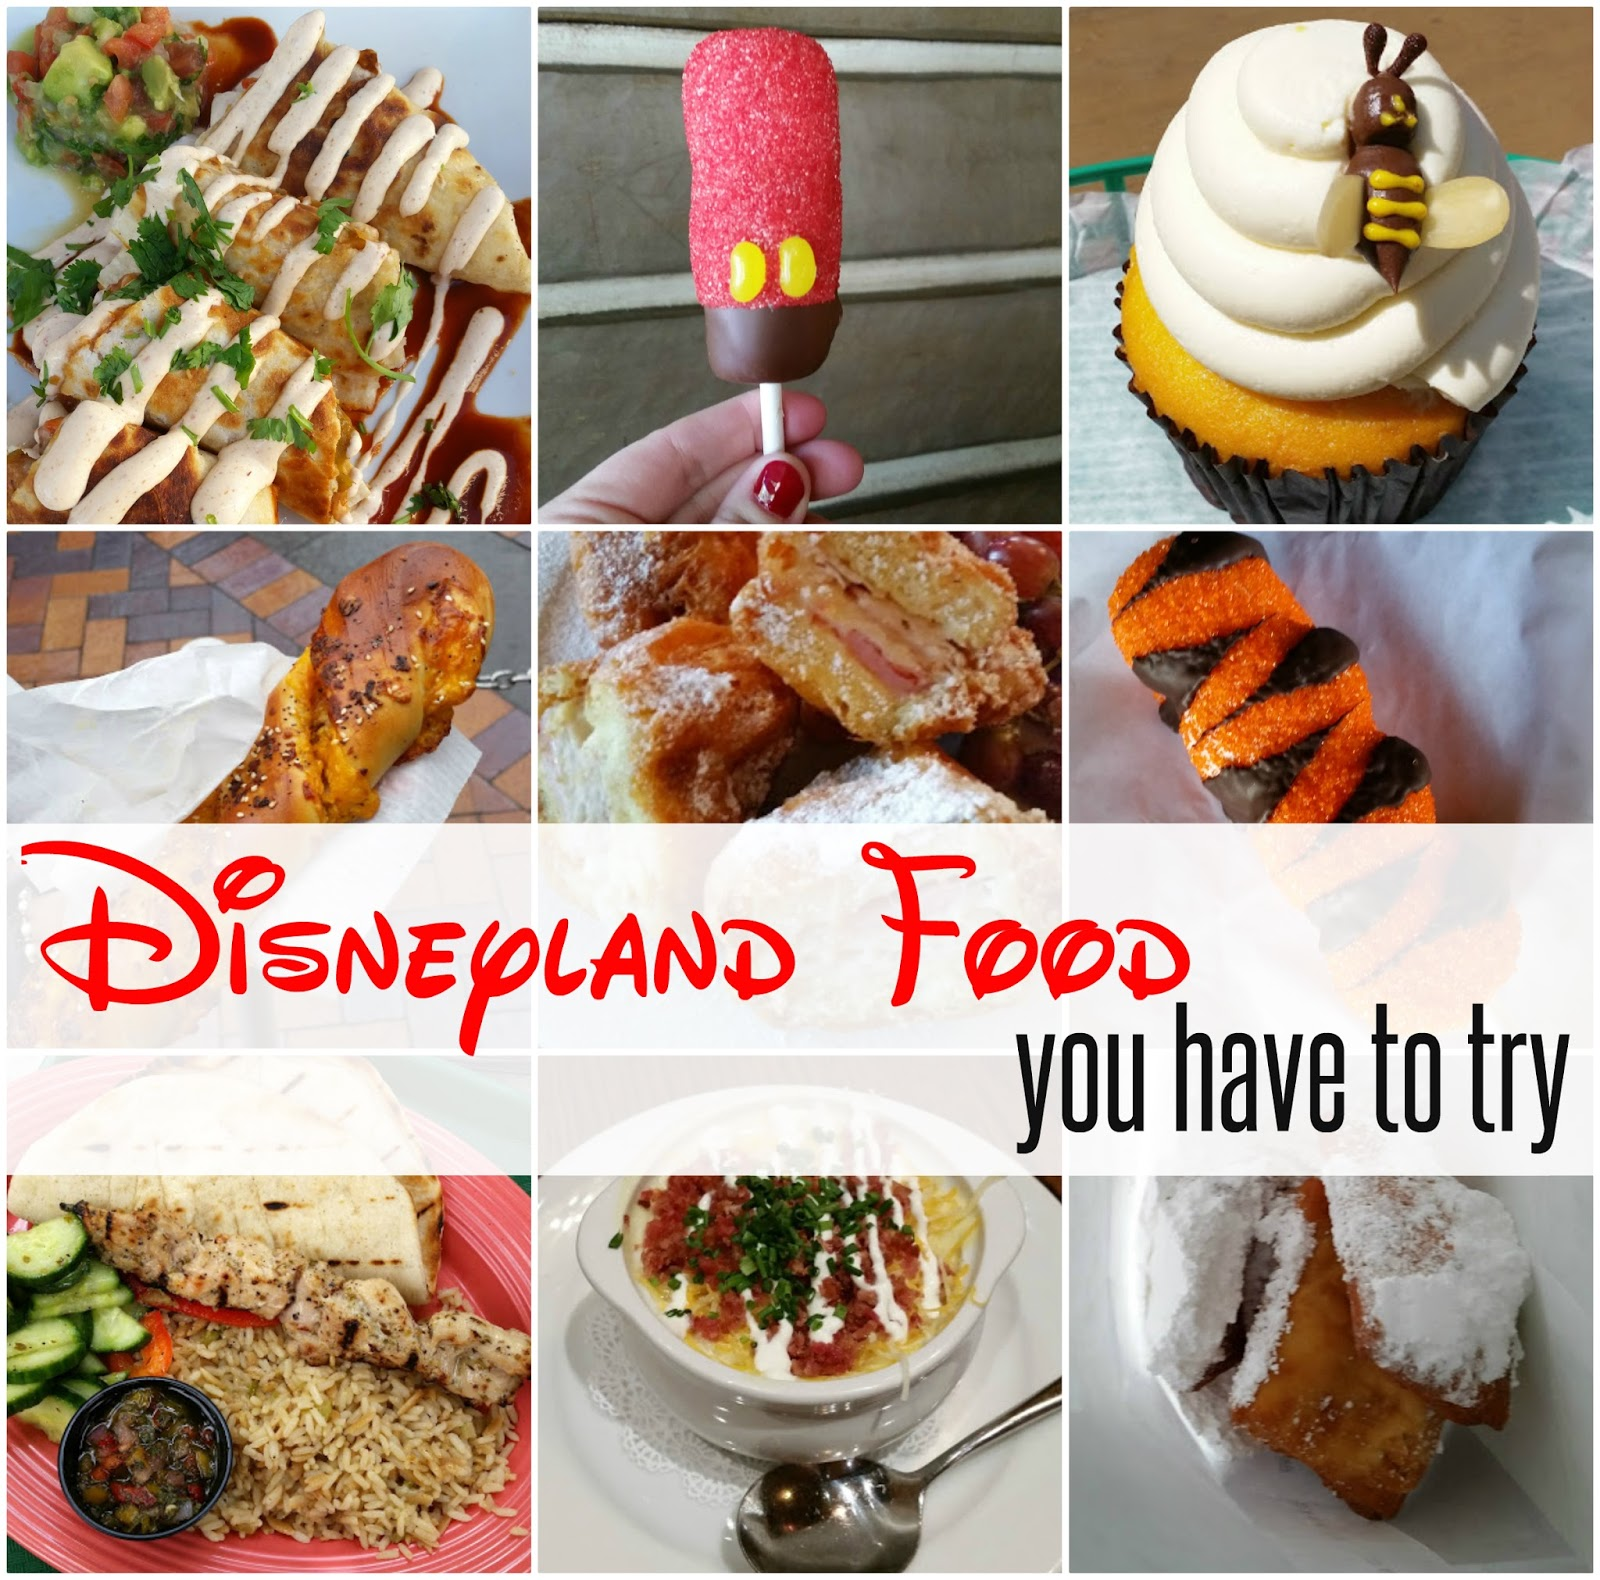 Whatever Dee-Dee wants, she's gonna get it: Disneyland and California Adventure Food | Recipes ...